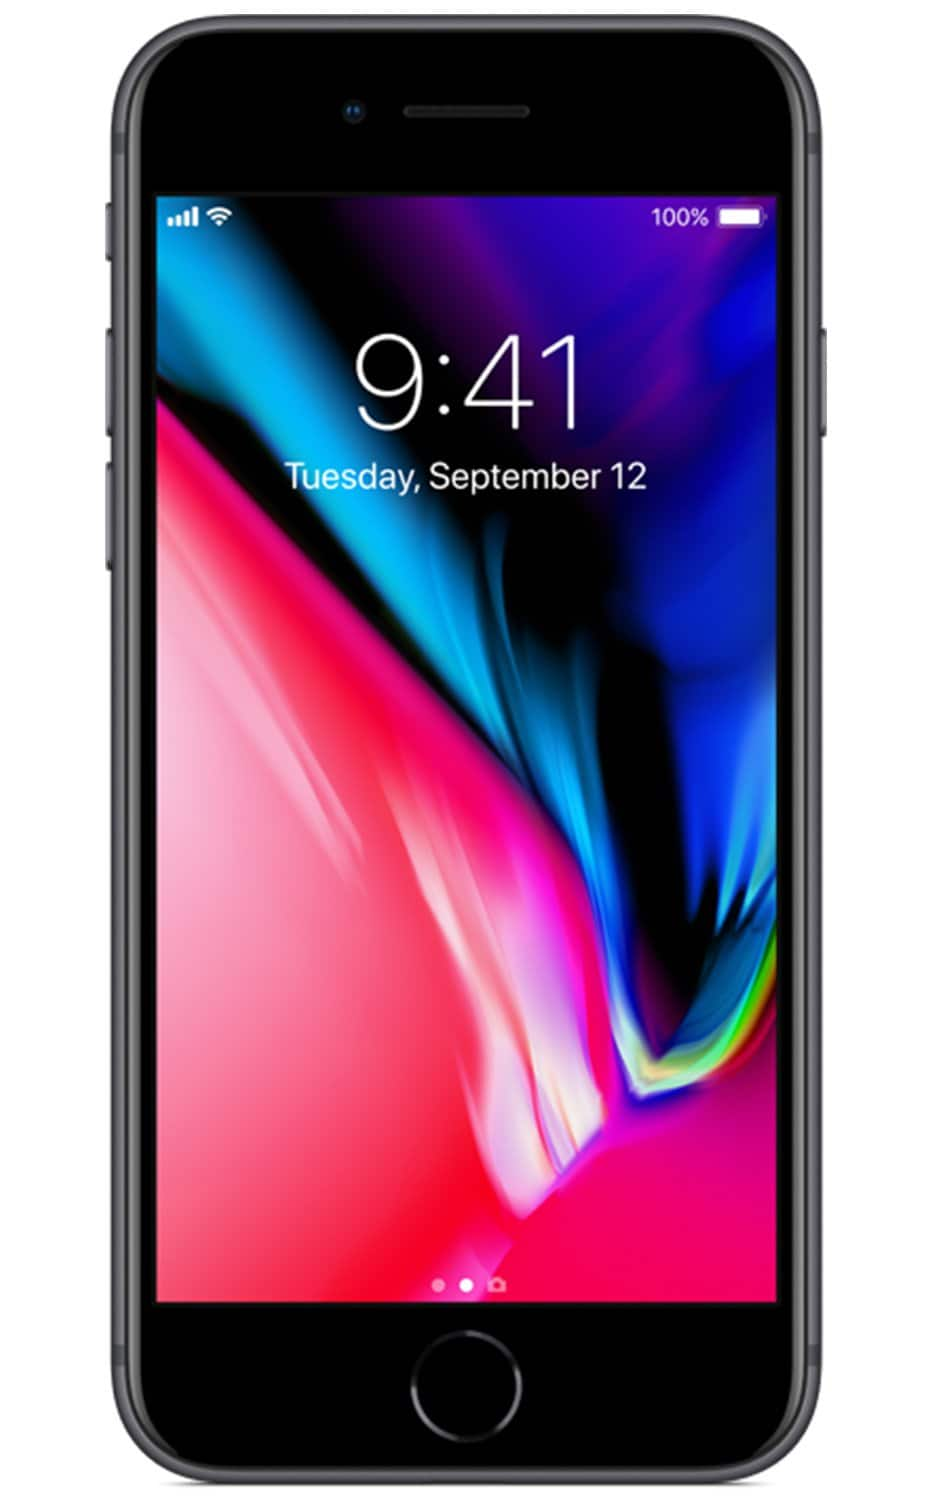 Red Pocket Mobile: Apple iPhone 8 starting at $349 (after $100 off coupon) + Free 360-Day 1K Mins Talk / Unlimited Texts / 1GB Data GSMA Plan w/ Purchase